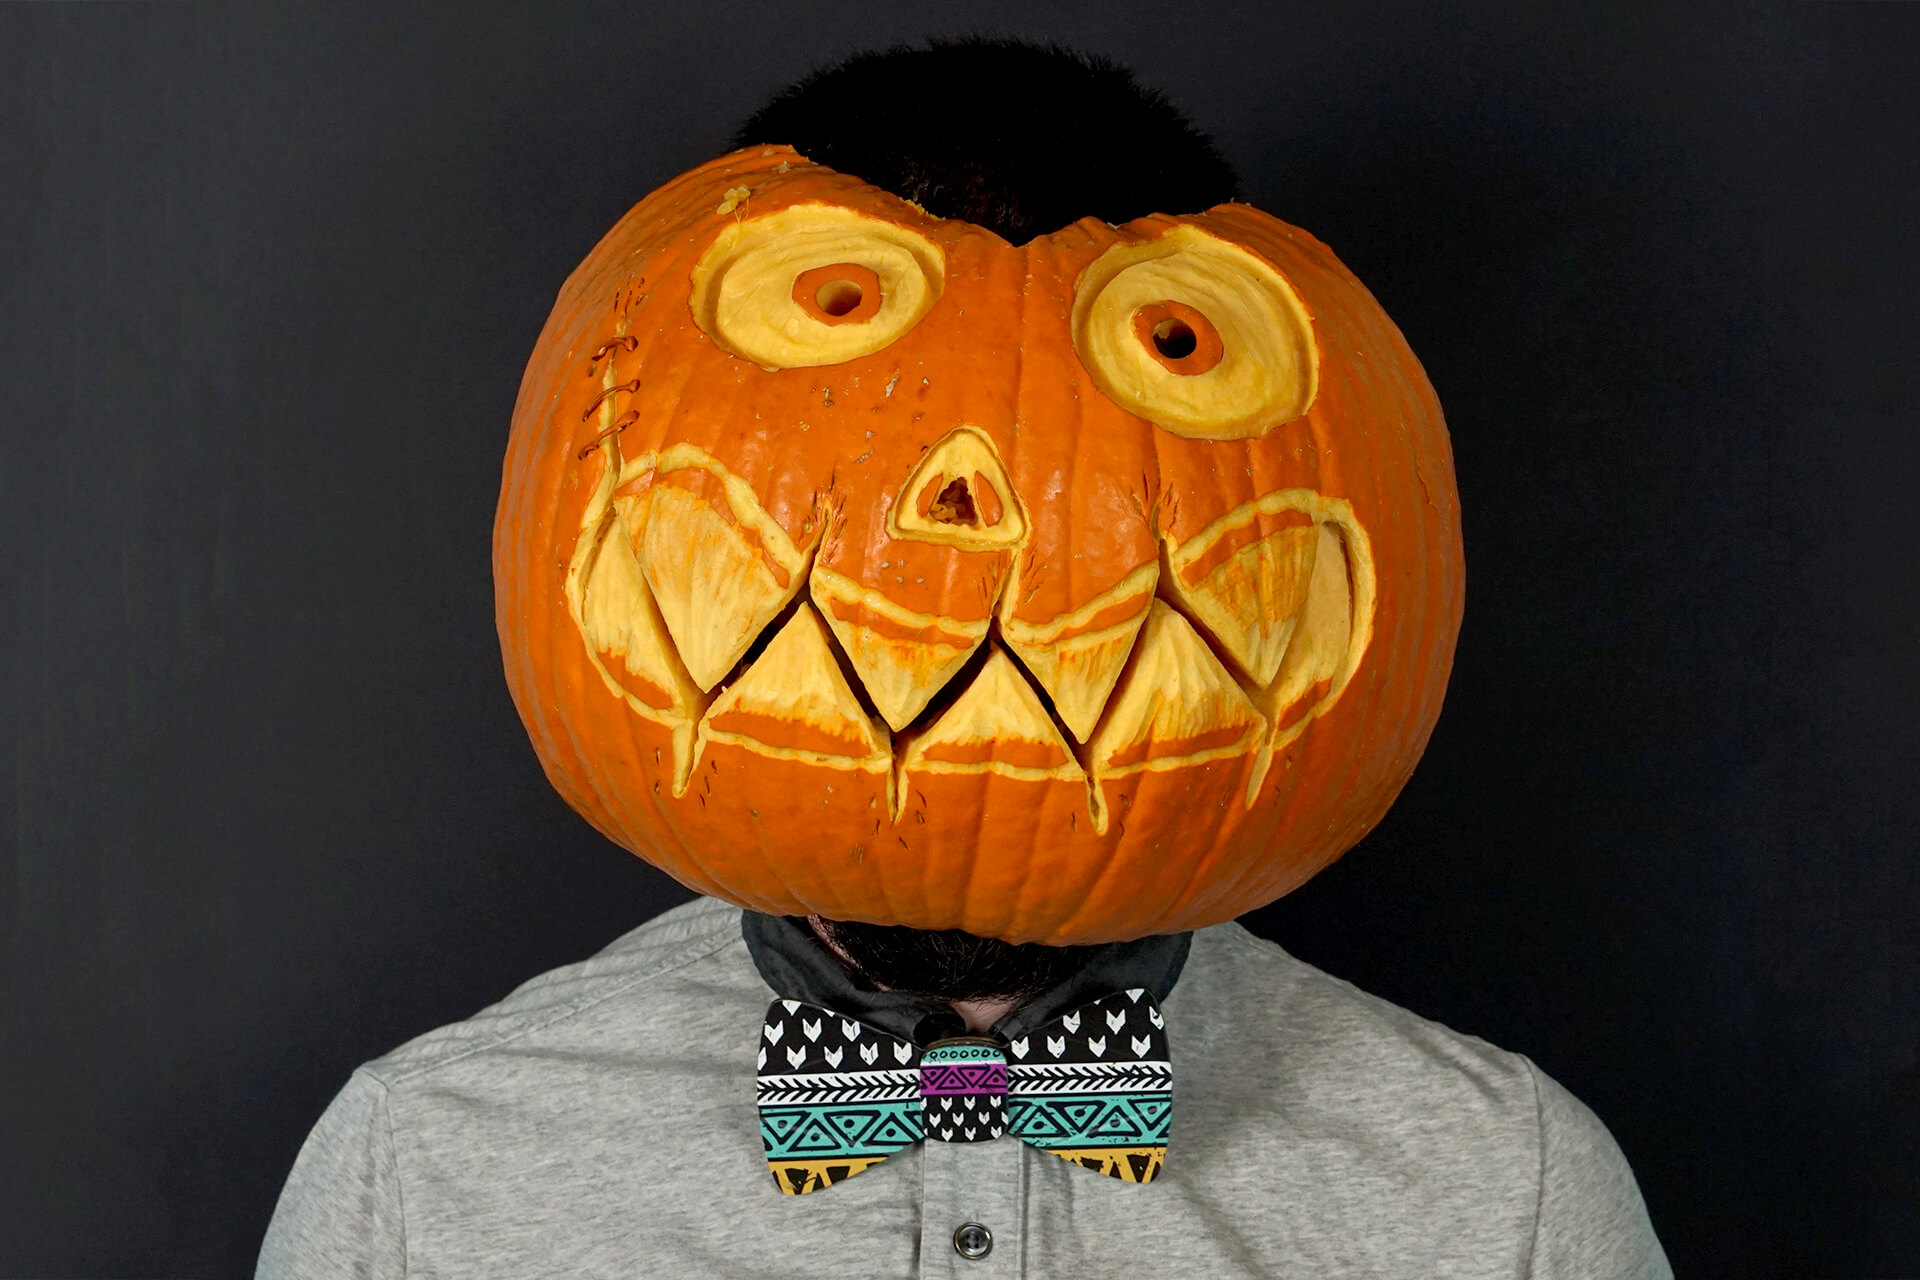 A lifestyle shot of the cardboard doodle bow tie on someone wearing a pumpkin head